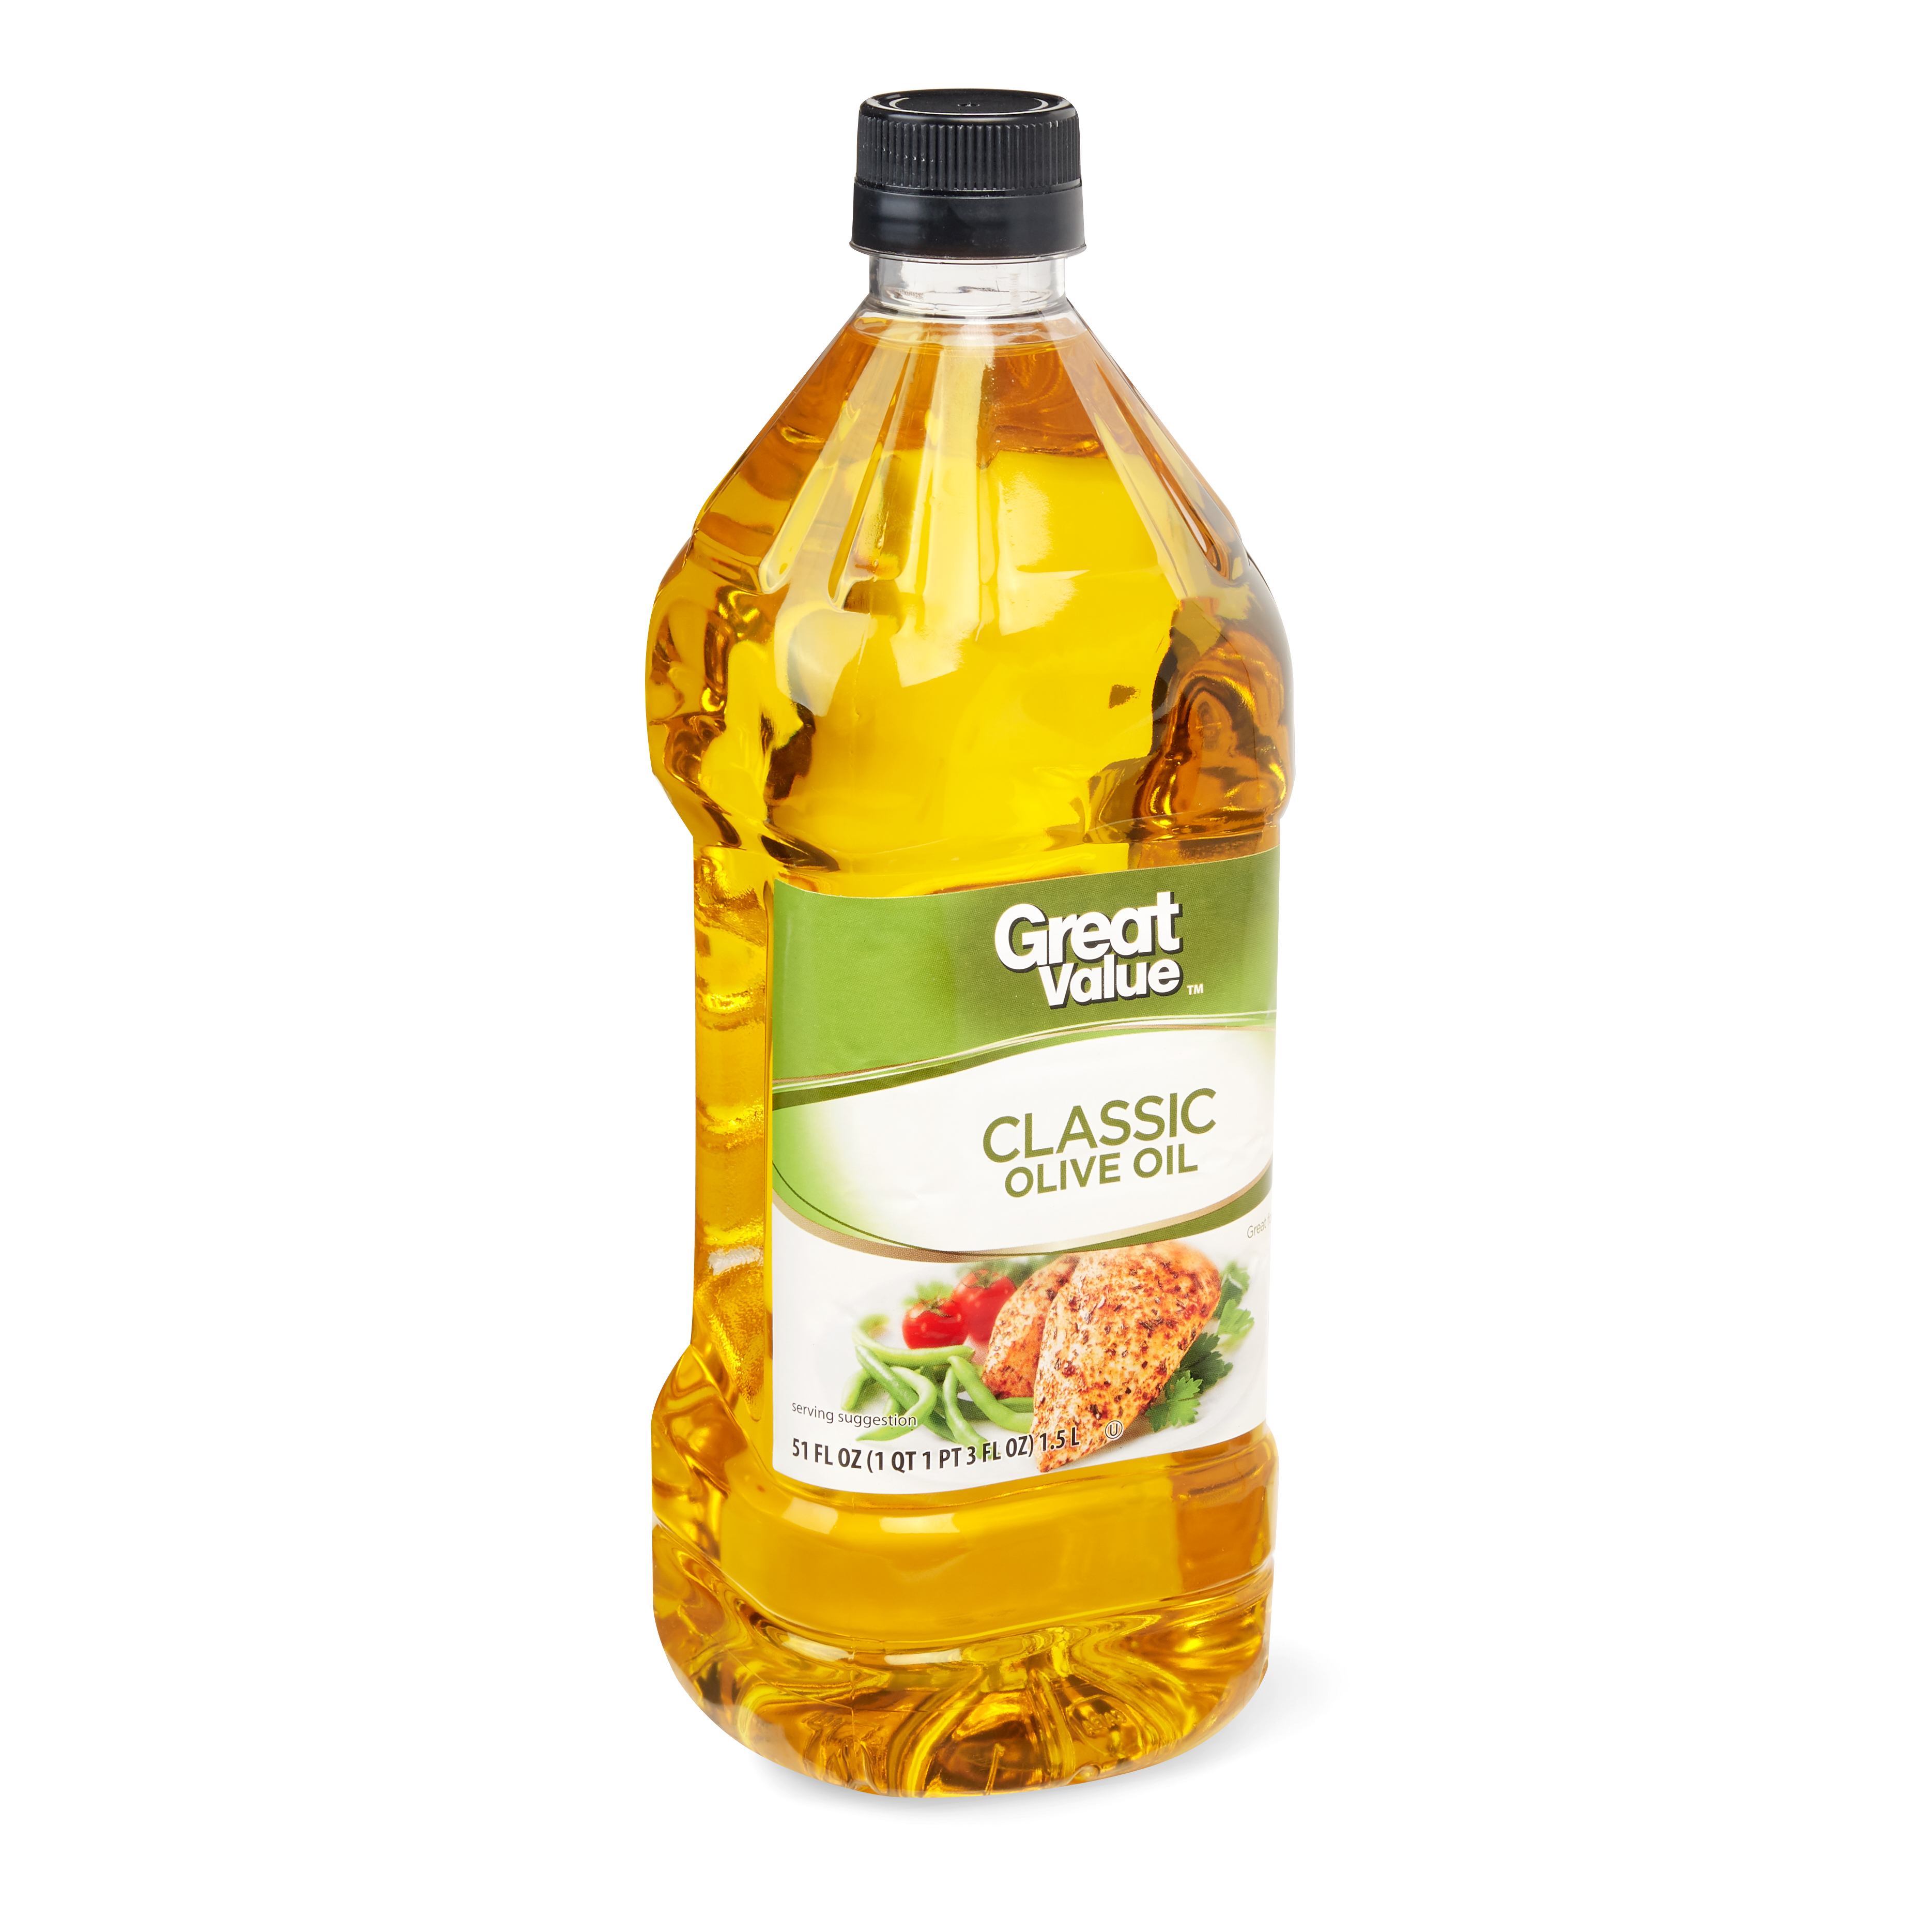 Great Value Classic Olive Oil 51 fl oz